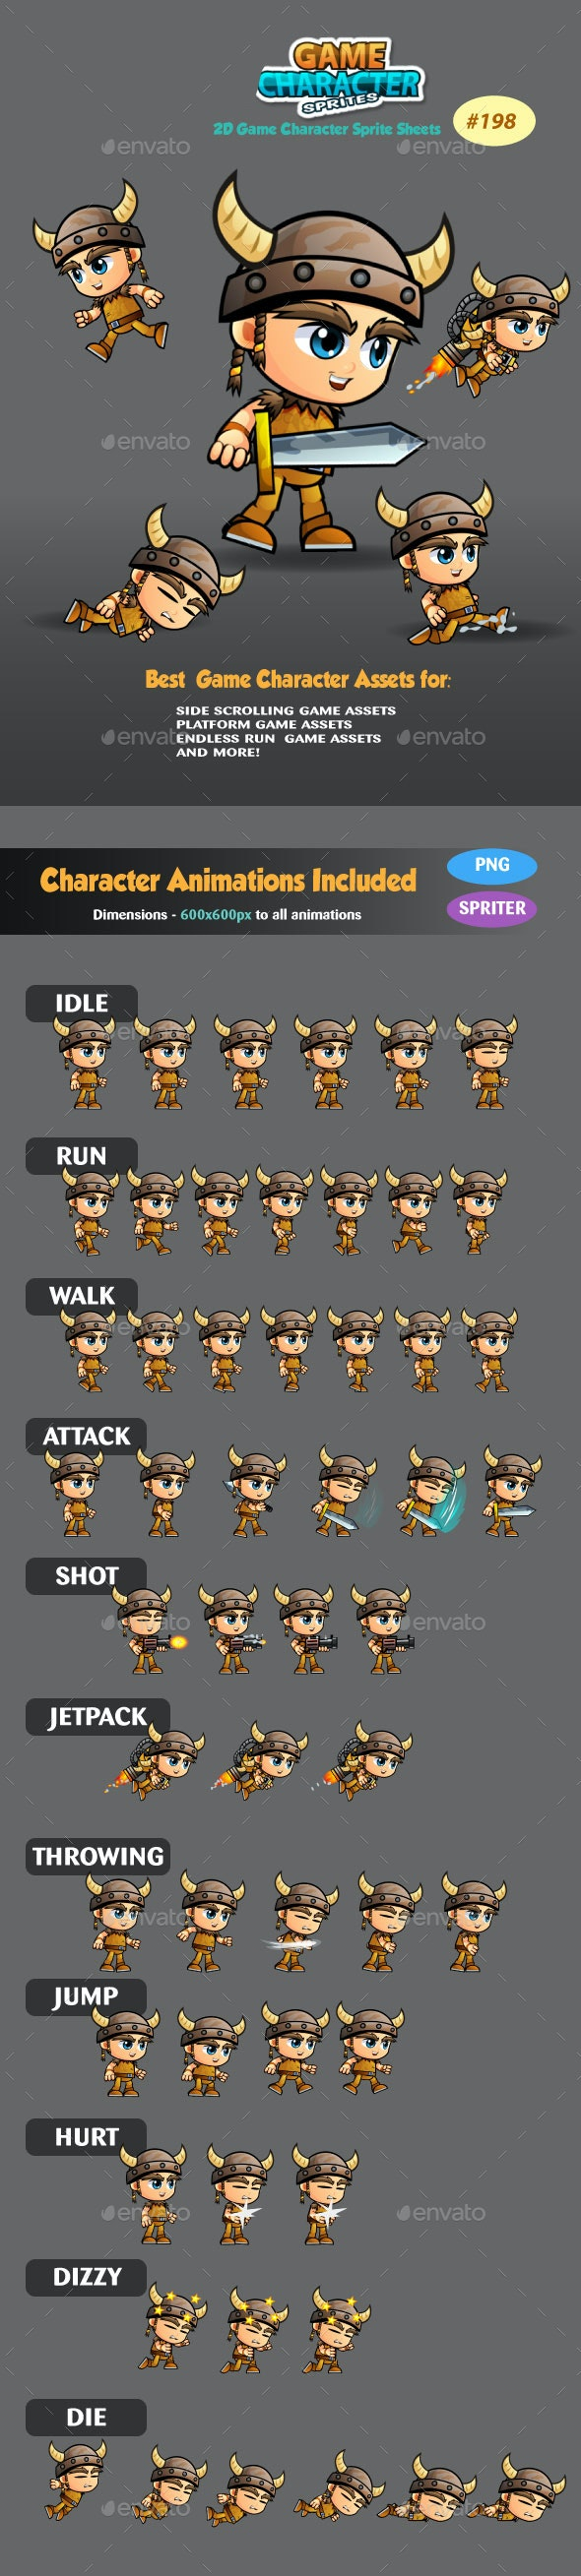 Viking Boy 2D Game Character Sprites 198 - Sprites Game Assets